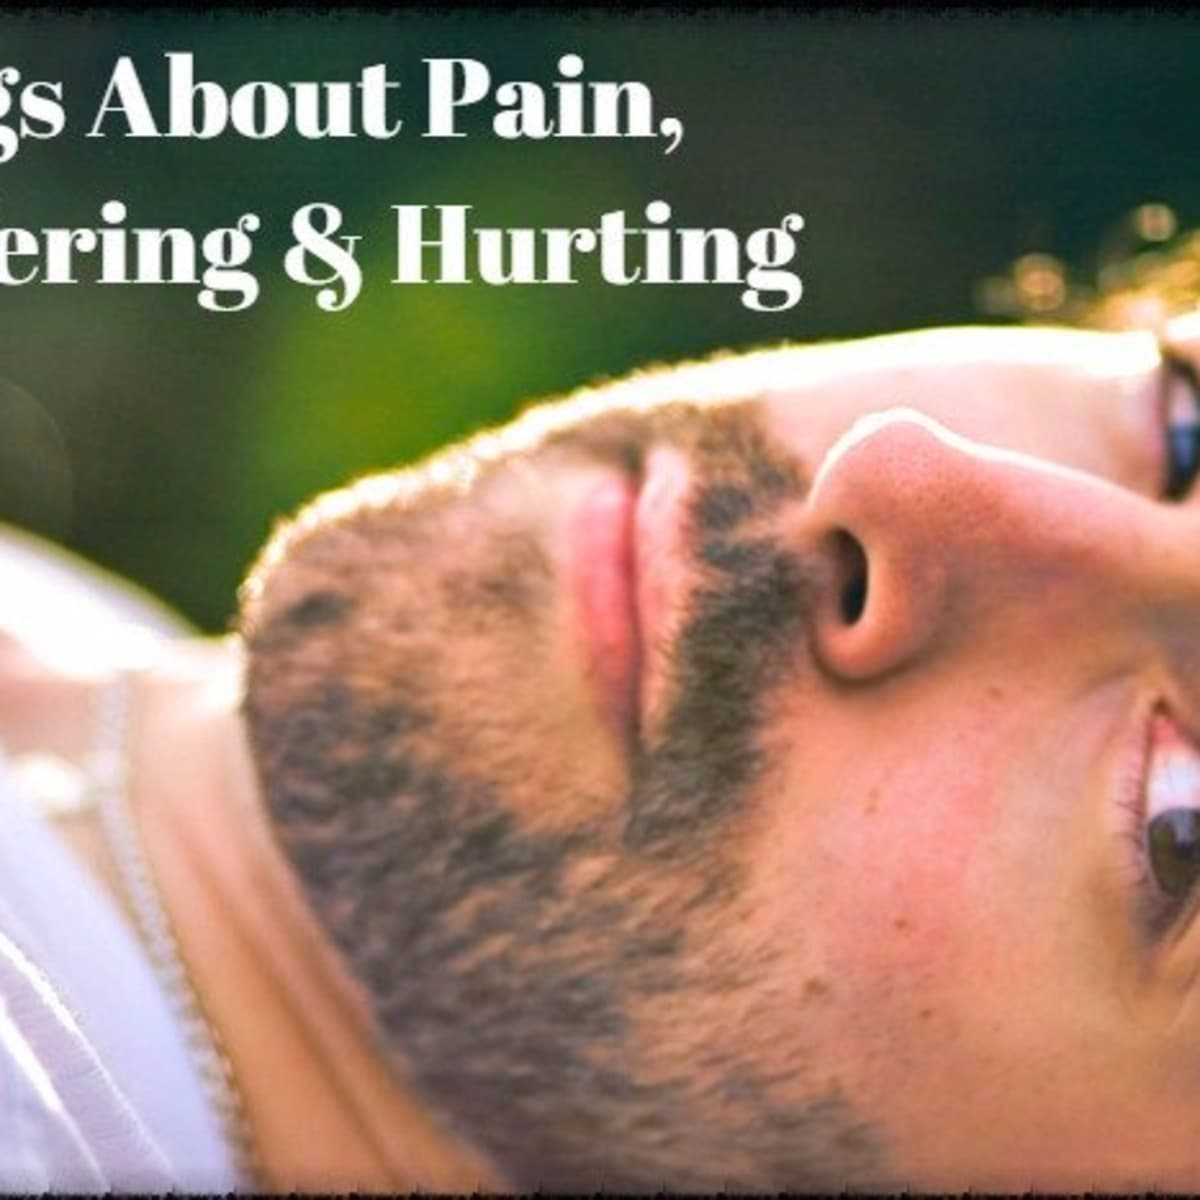 32 Songs About Pain, Suffering, and Hurting   Spinditty